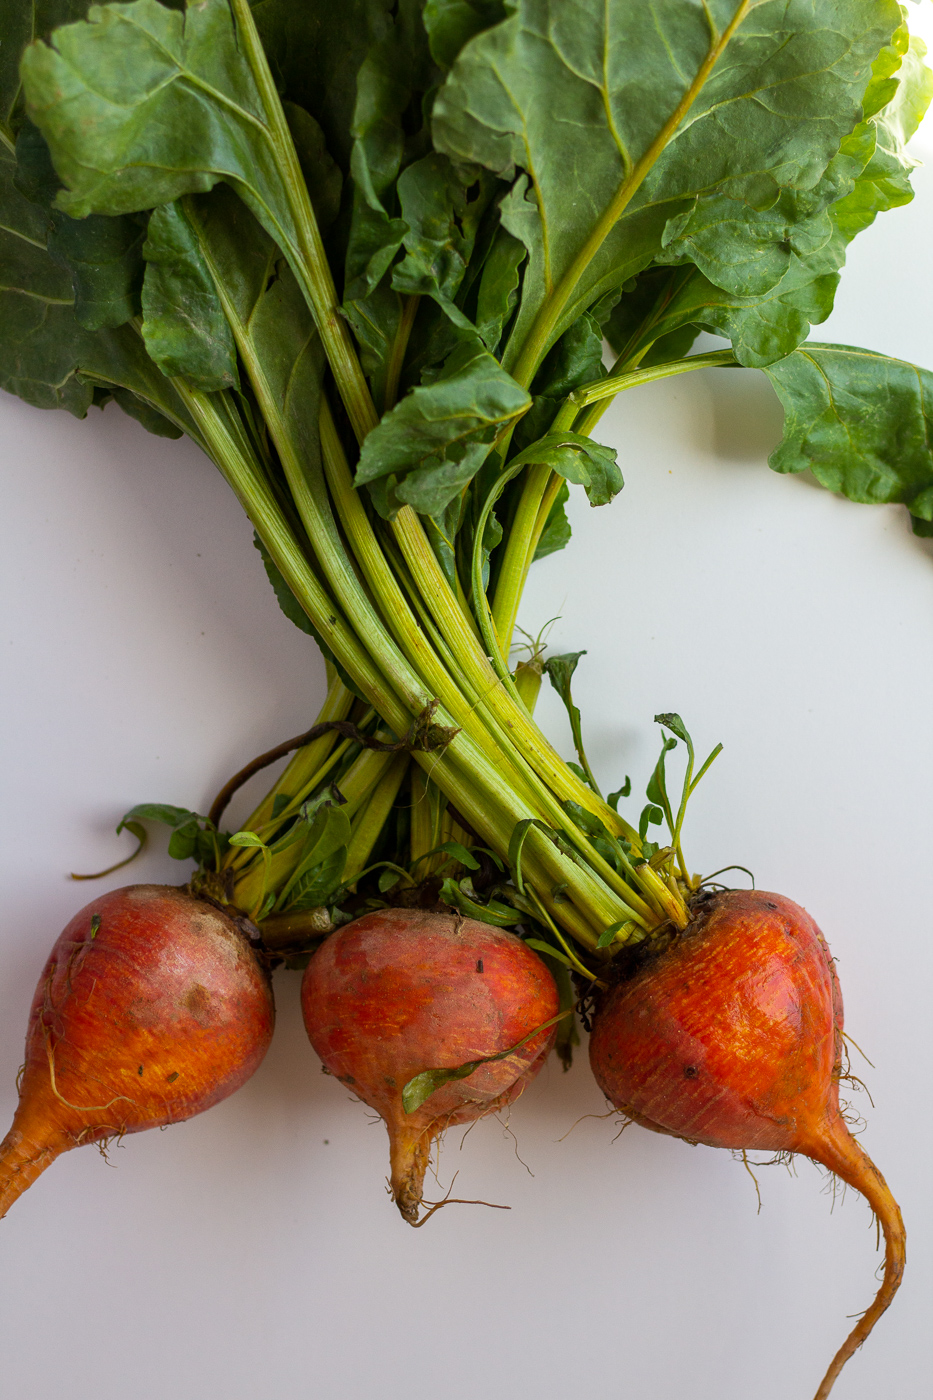 Meet Your Ingredients: Beets